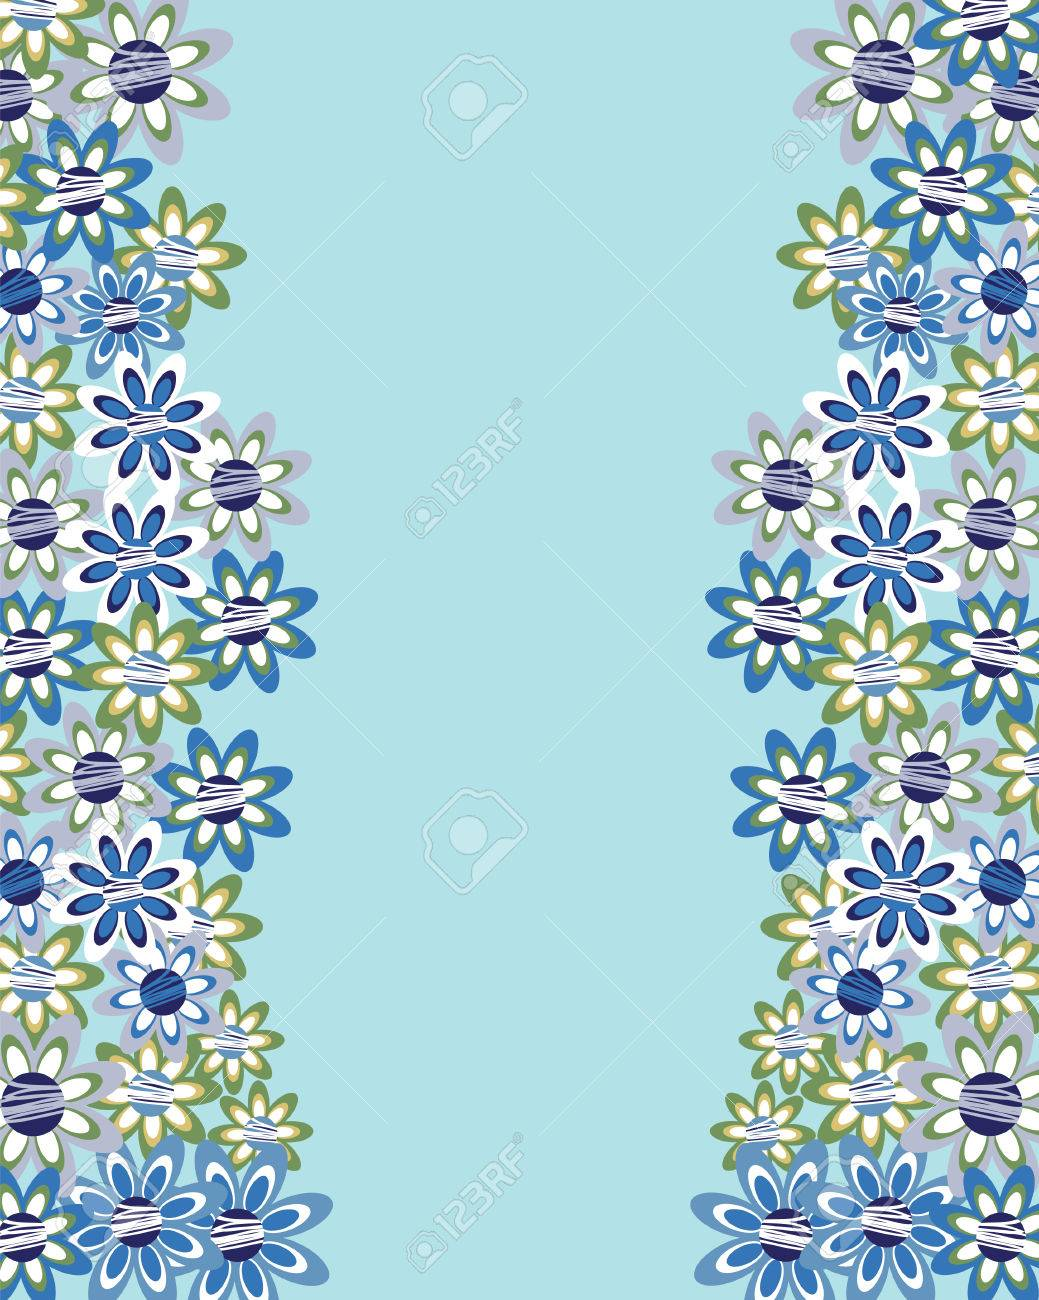 Floral Invitation Or Greeting Card On Blue Background Template